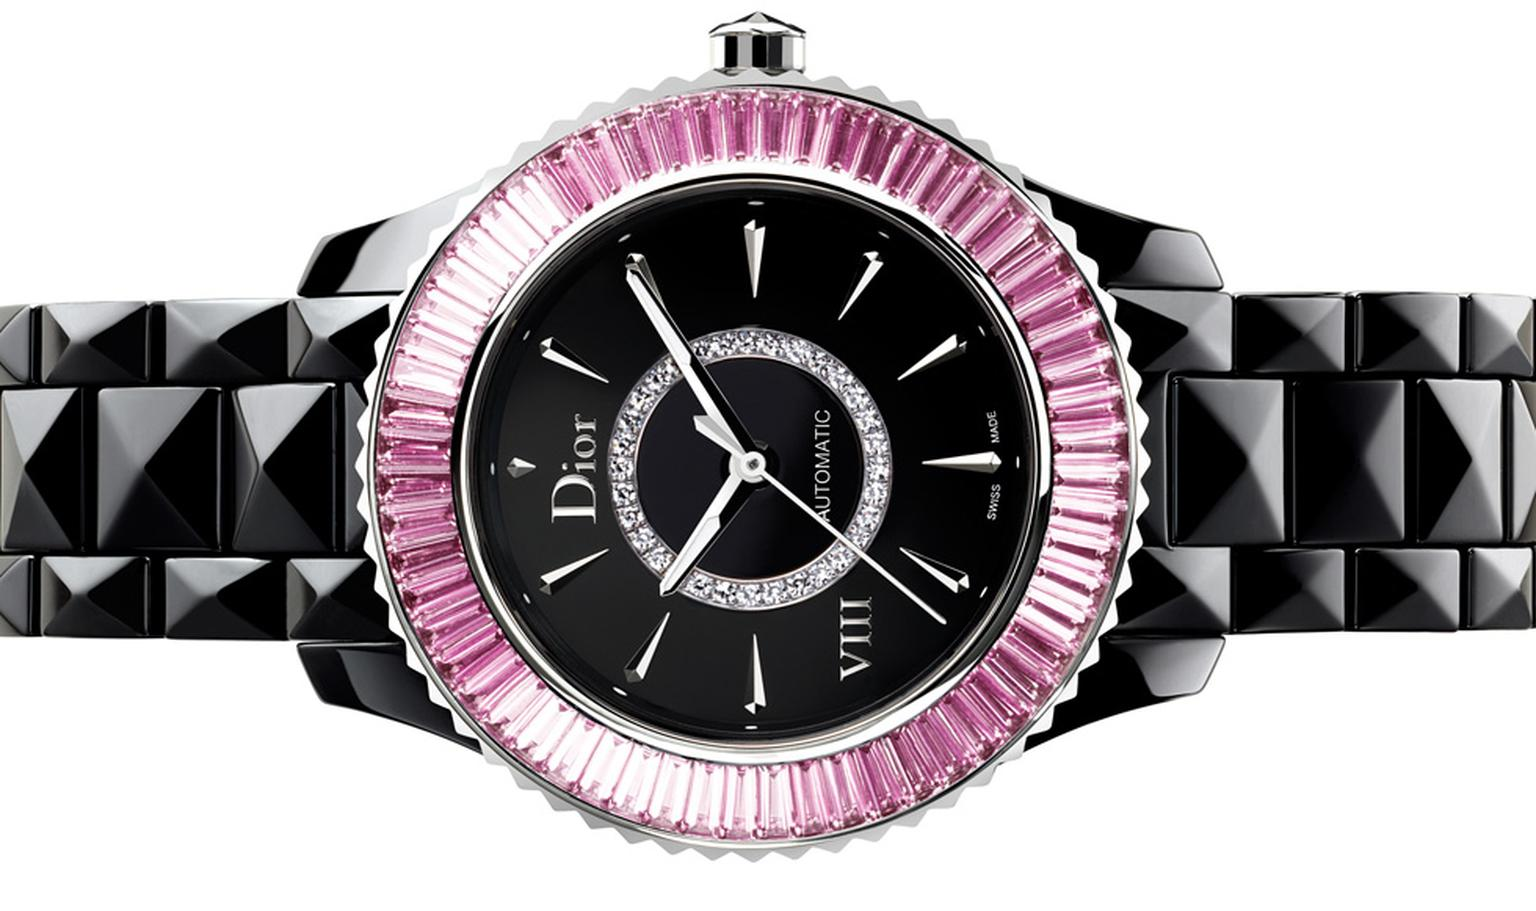 Dior VIII 33mm automatic watch set with baguette-cut pink sapphires.